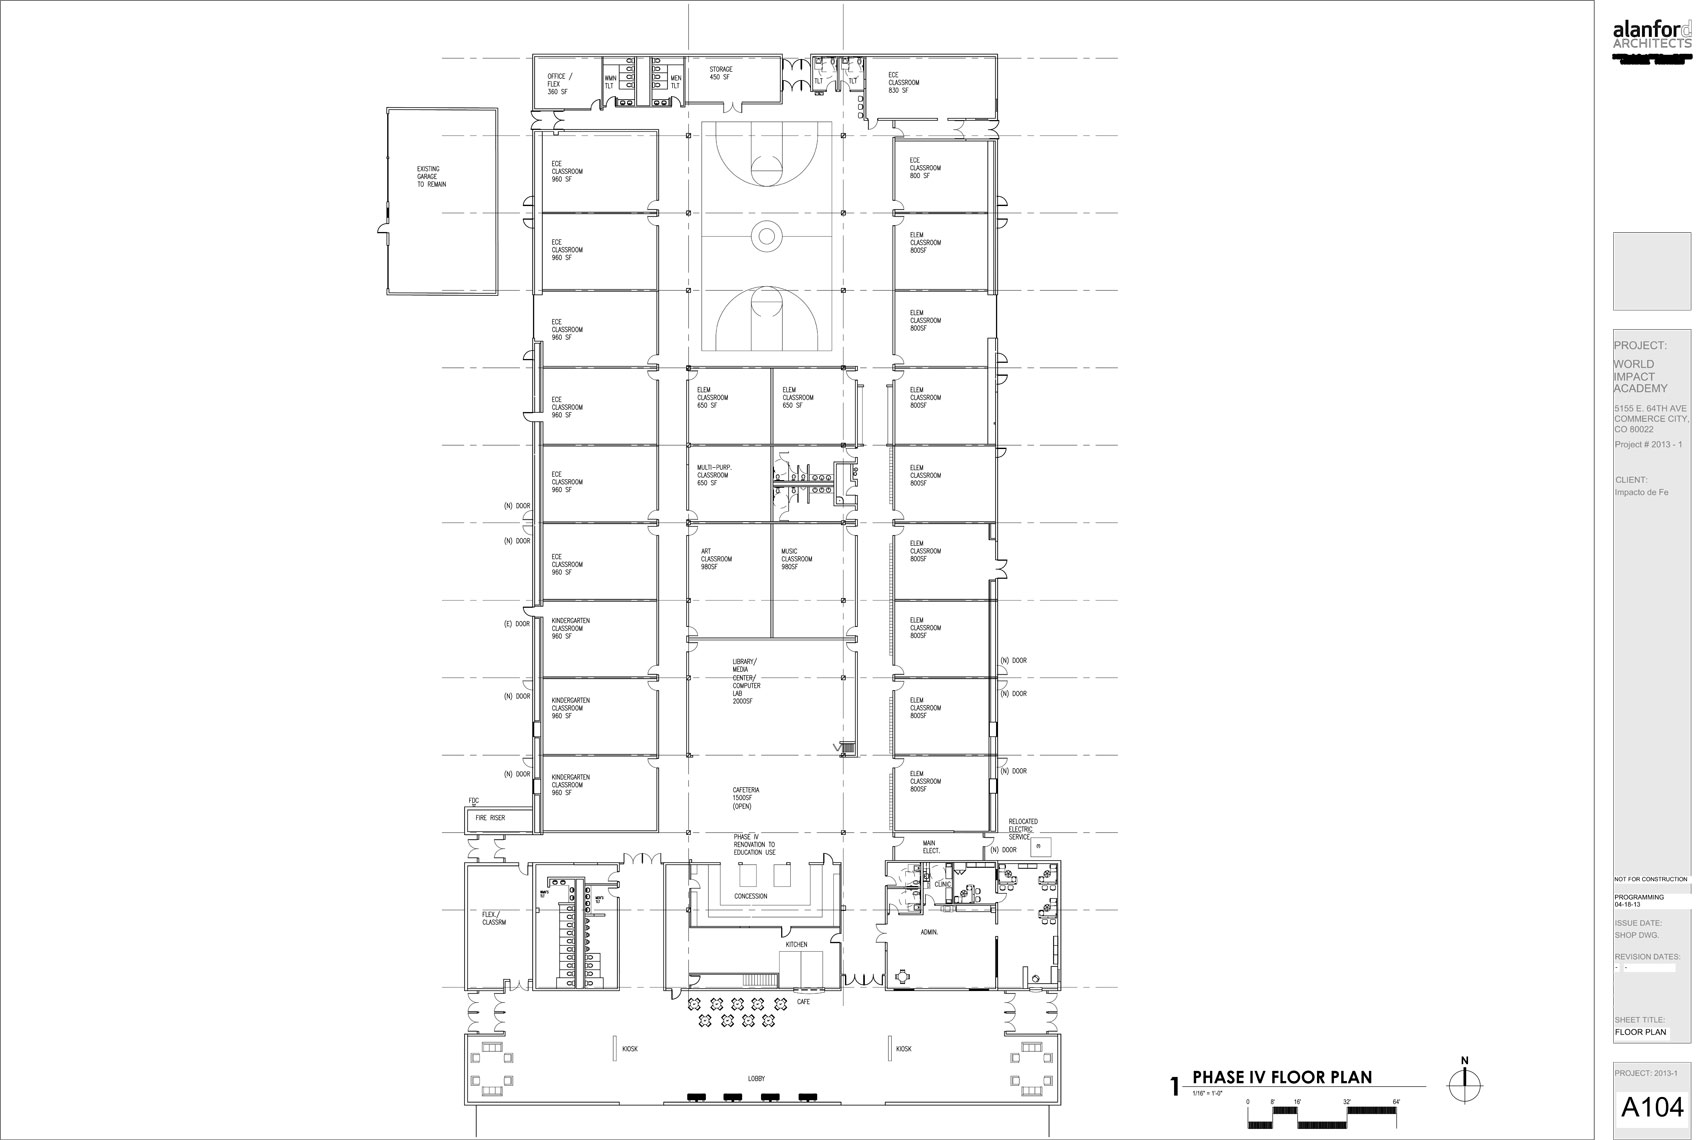 P:\2013-1 Commerce City School\Drawings\Process\SDP\Phase I Plan 24x36 (1)